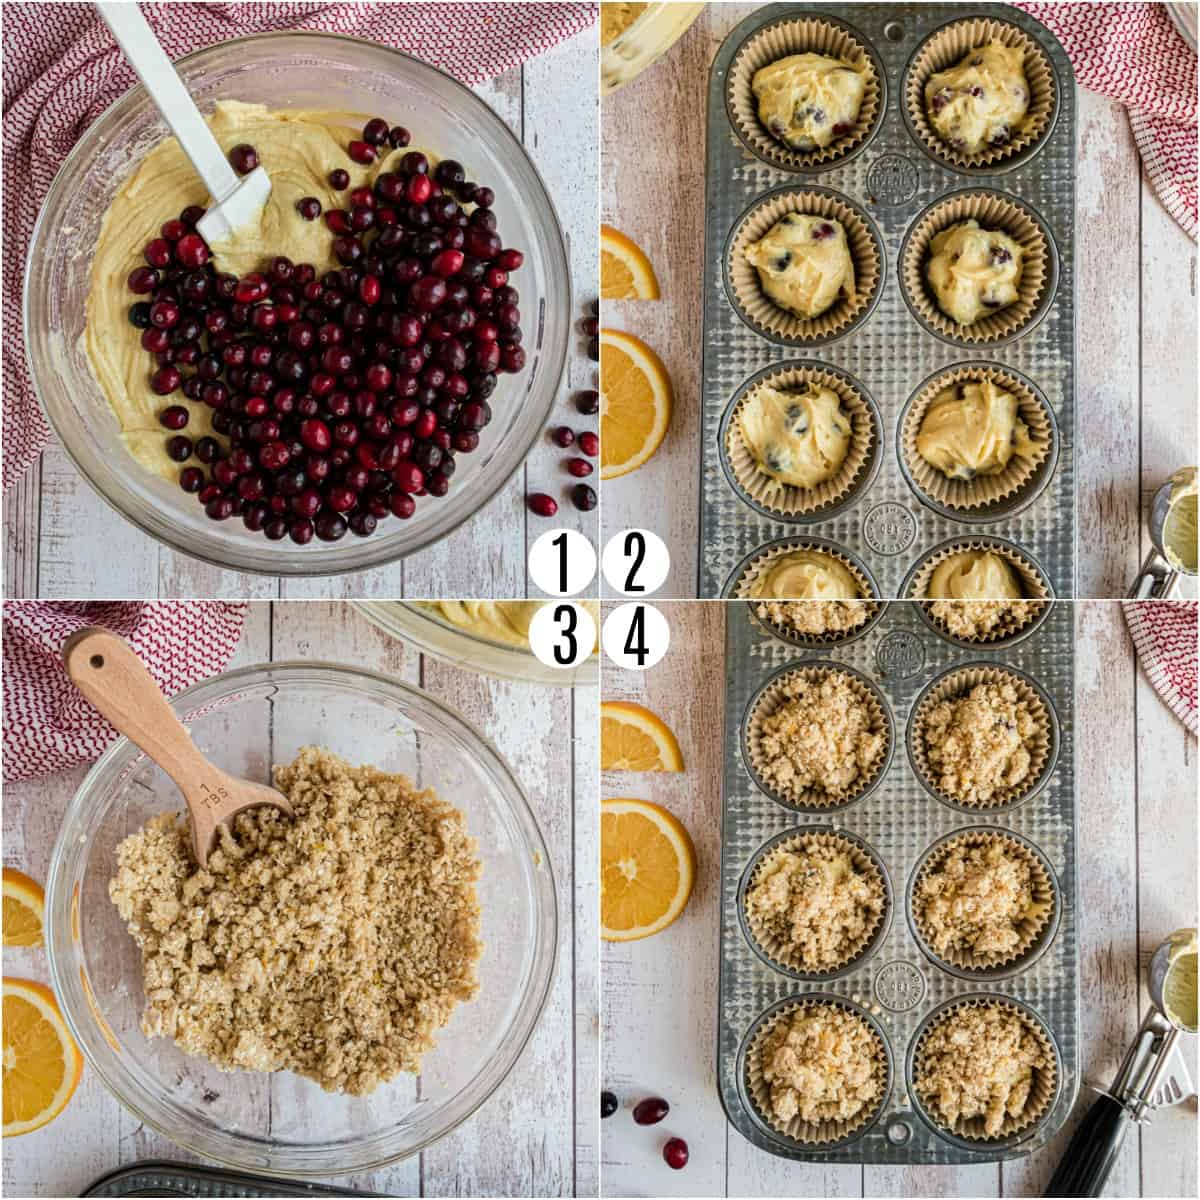 Step by step photos showing how to make cranberry orange muffins.